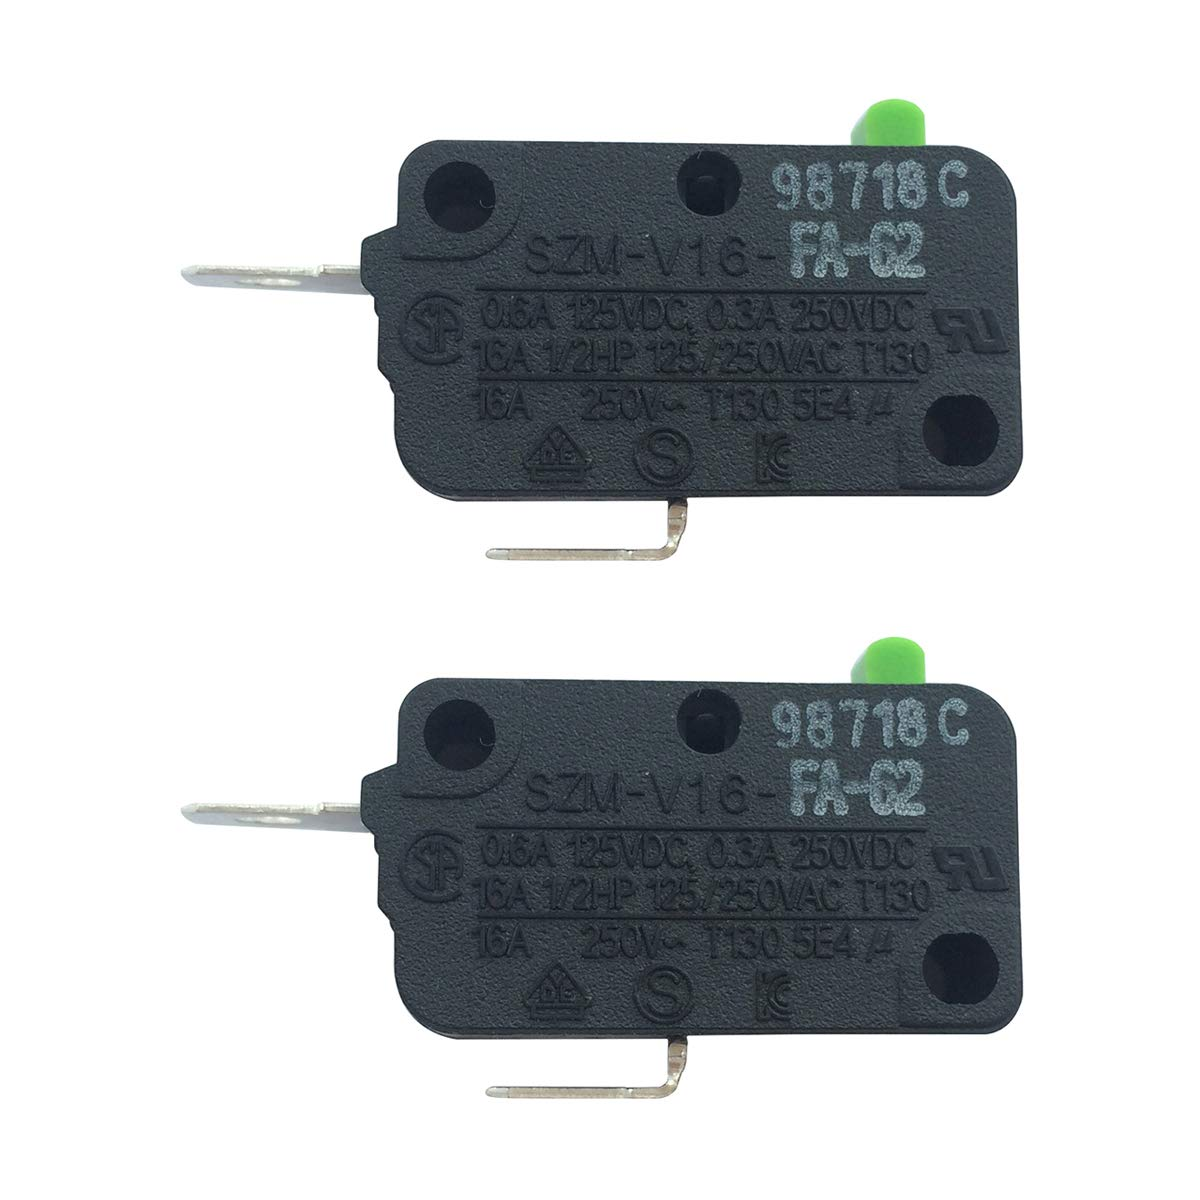 LONYE SZM-V16-FA-62 3B73361E Microwave Oven Door Micro Switch for LG Kenmore Starion Microwave 6600W1K001C Dr47(Normally Closed)(Pack of 2)